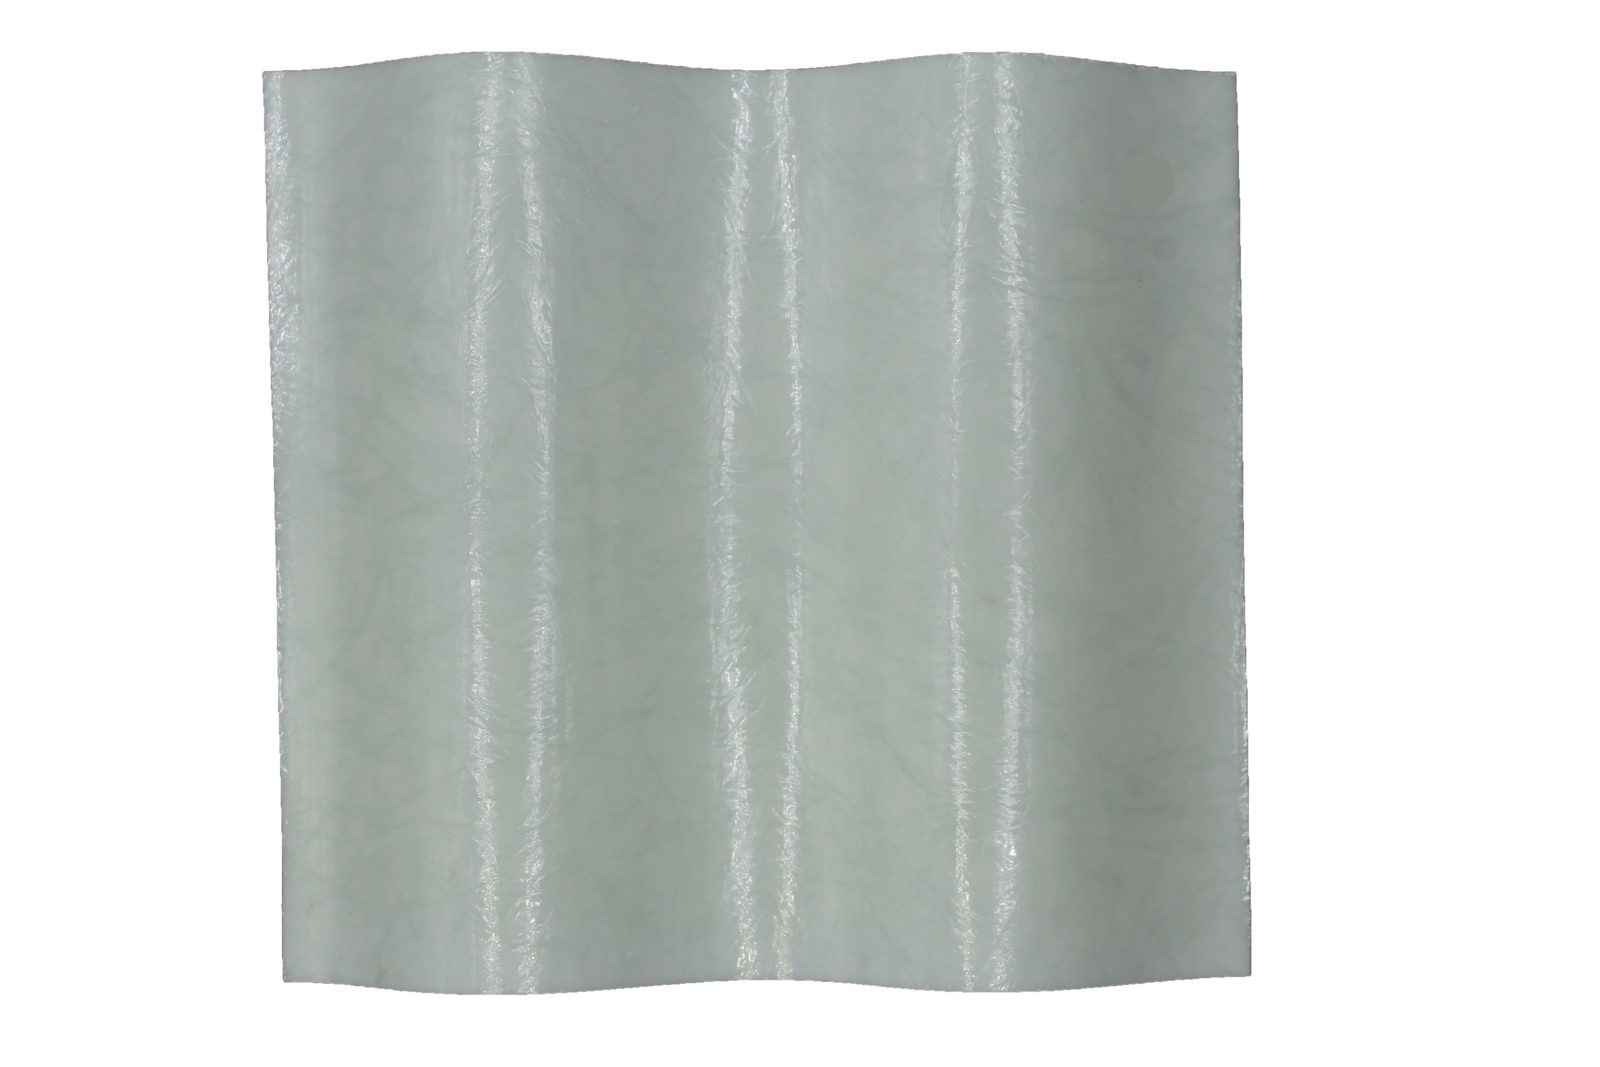 Fiberglass Roofing And Siding Panel 2 5 X 1 2 Profile